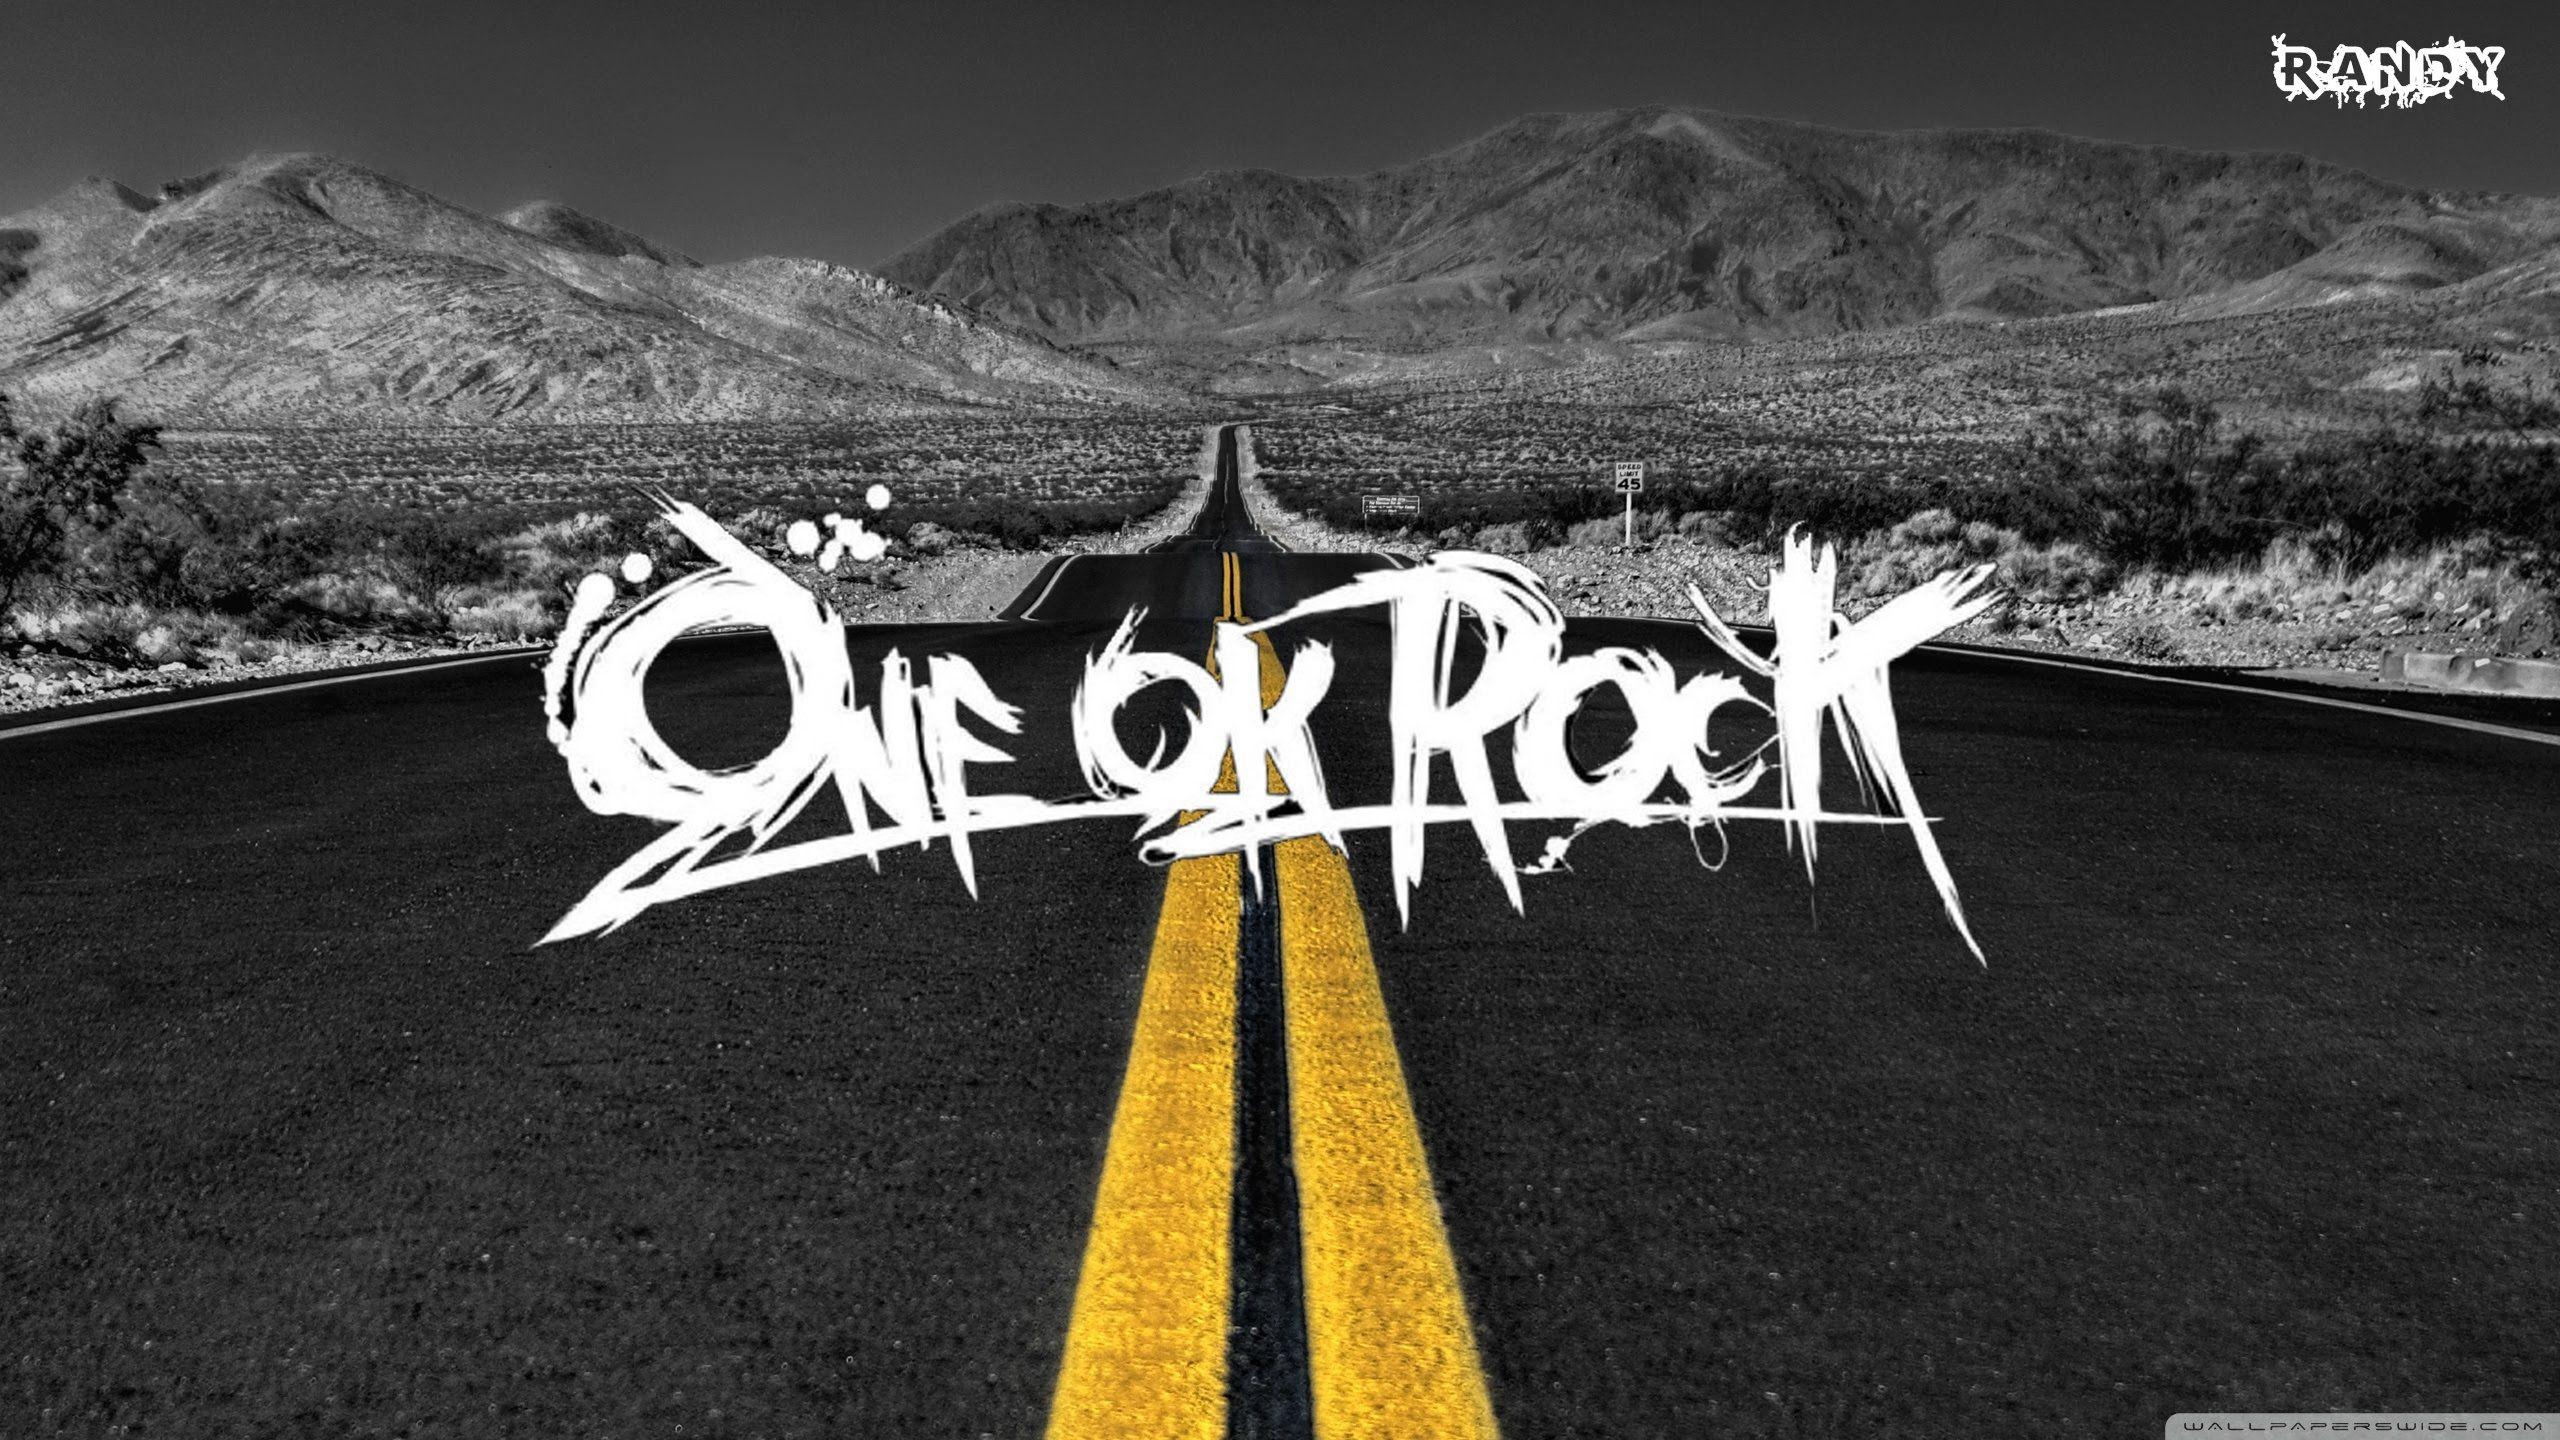 One Ok Rock Full Album |35XXXV| 2015 - YouTube